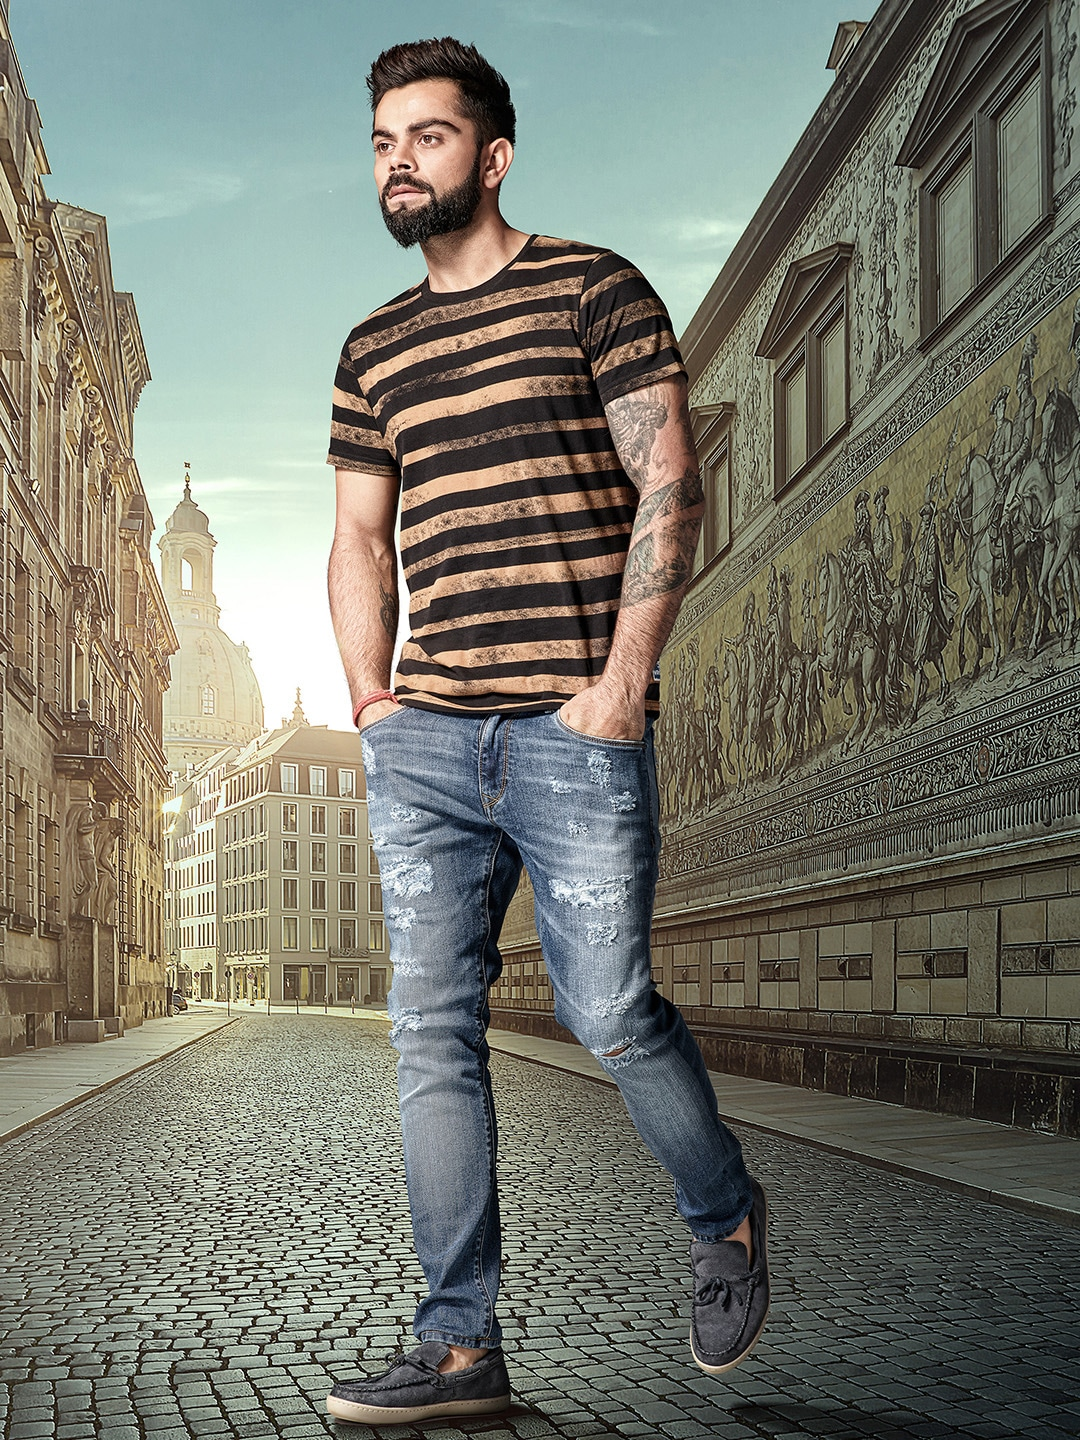 Buy WROGN Brown & Black Striped Round Neck Men's T-shirt At Best Price